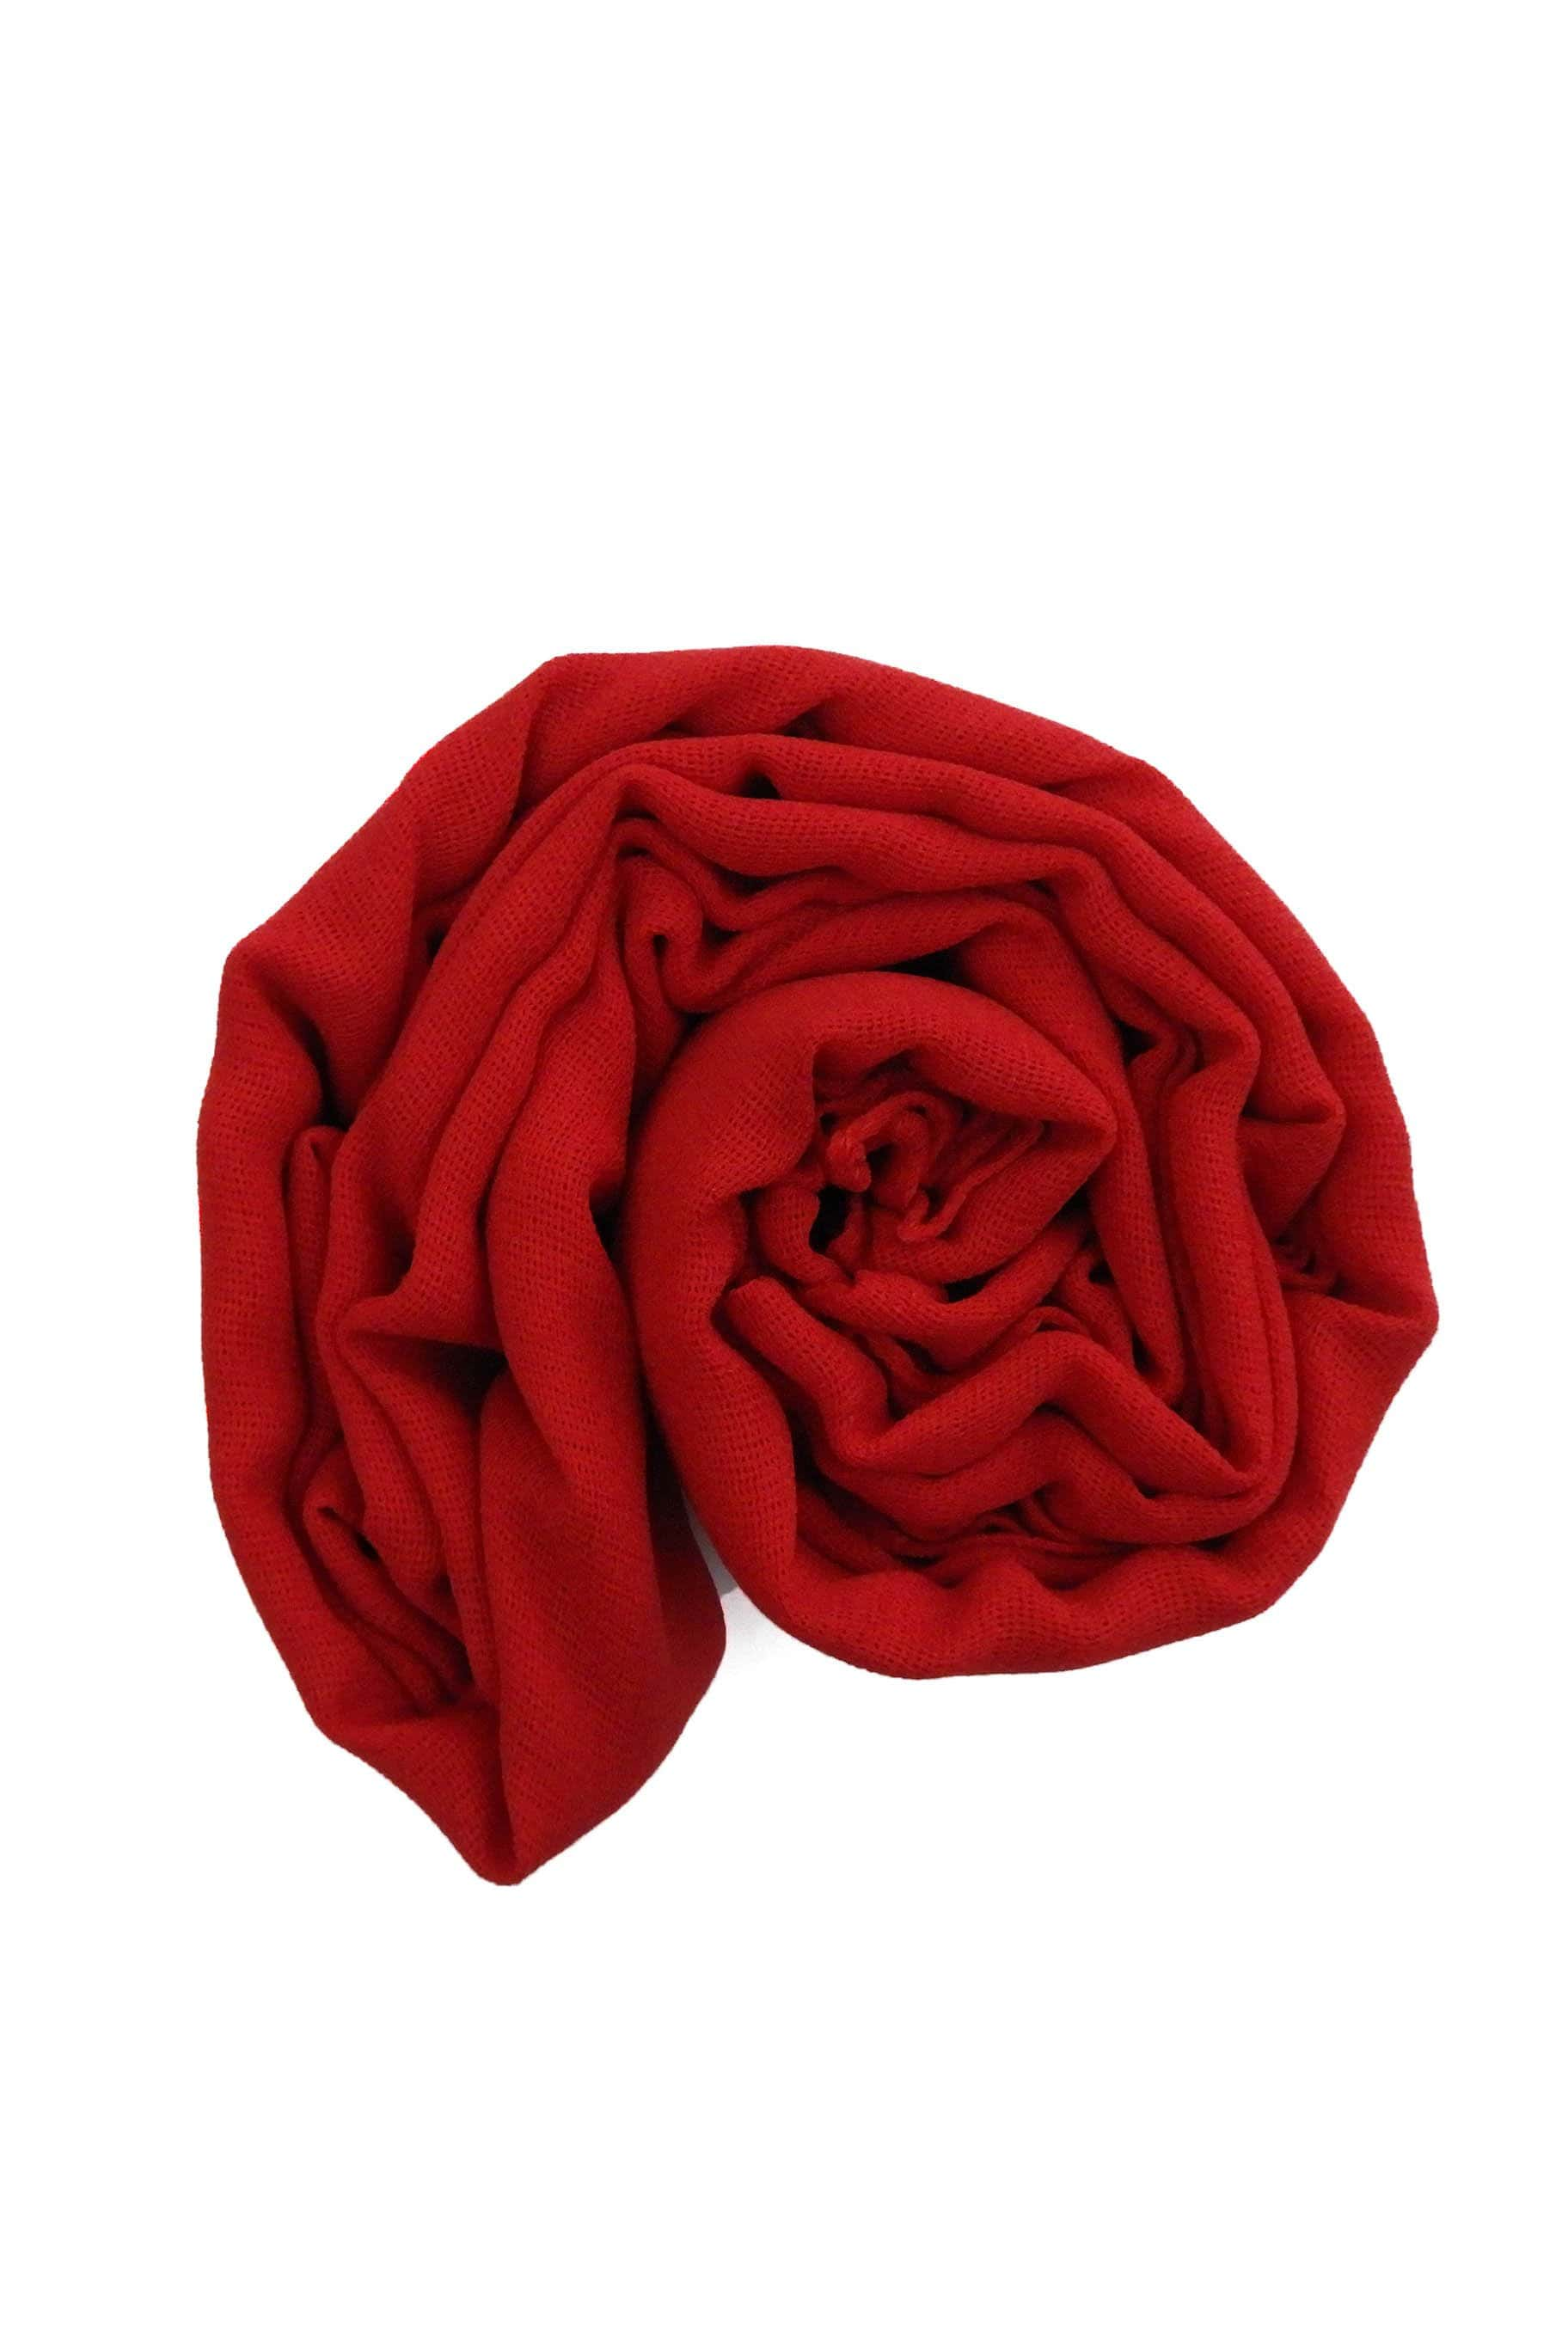 Rose Red Jute Cotton - Jute-Cotton Hijab - The Modest Look